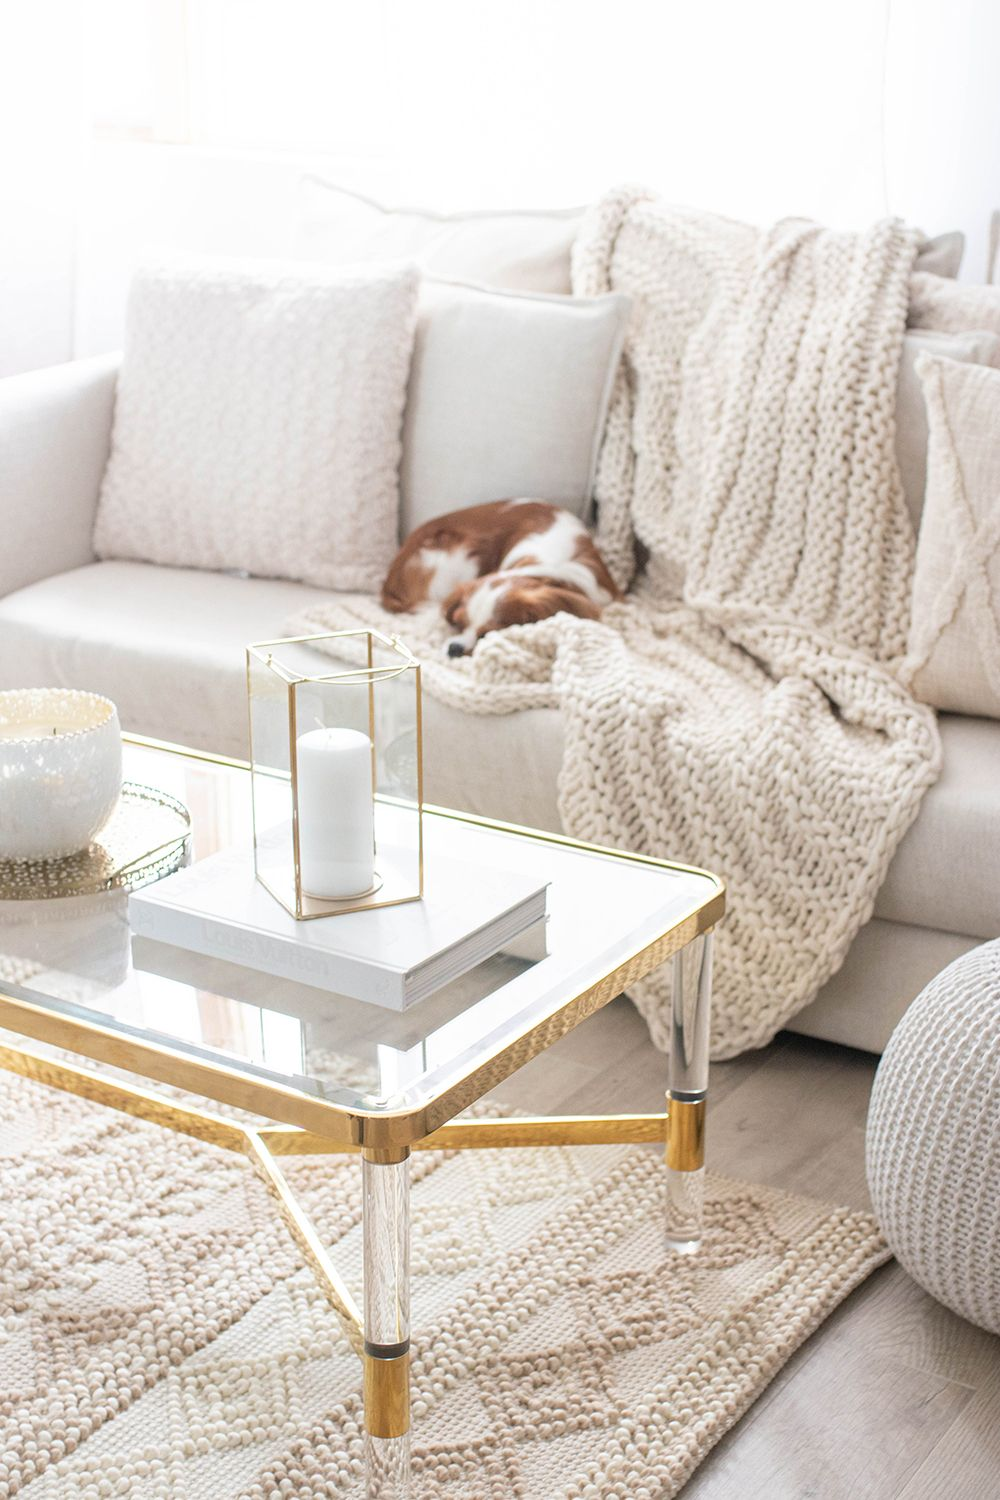 Walmart Home Coastal Vibes In The Living Room Con Imagenes